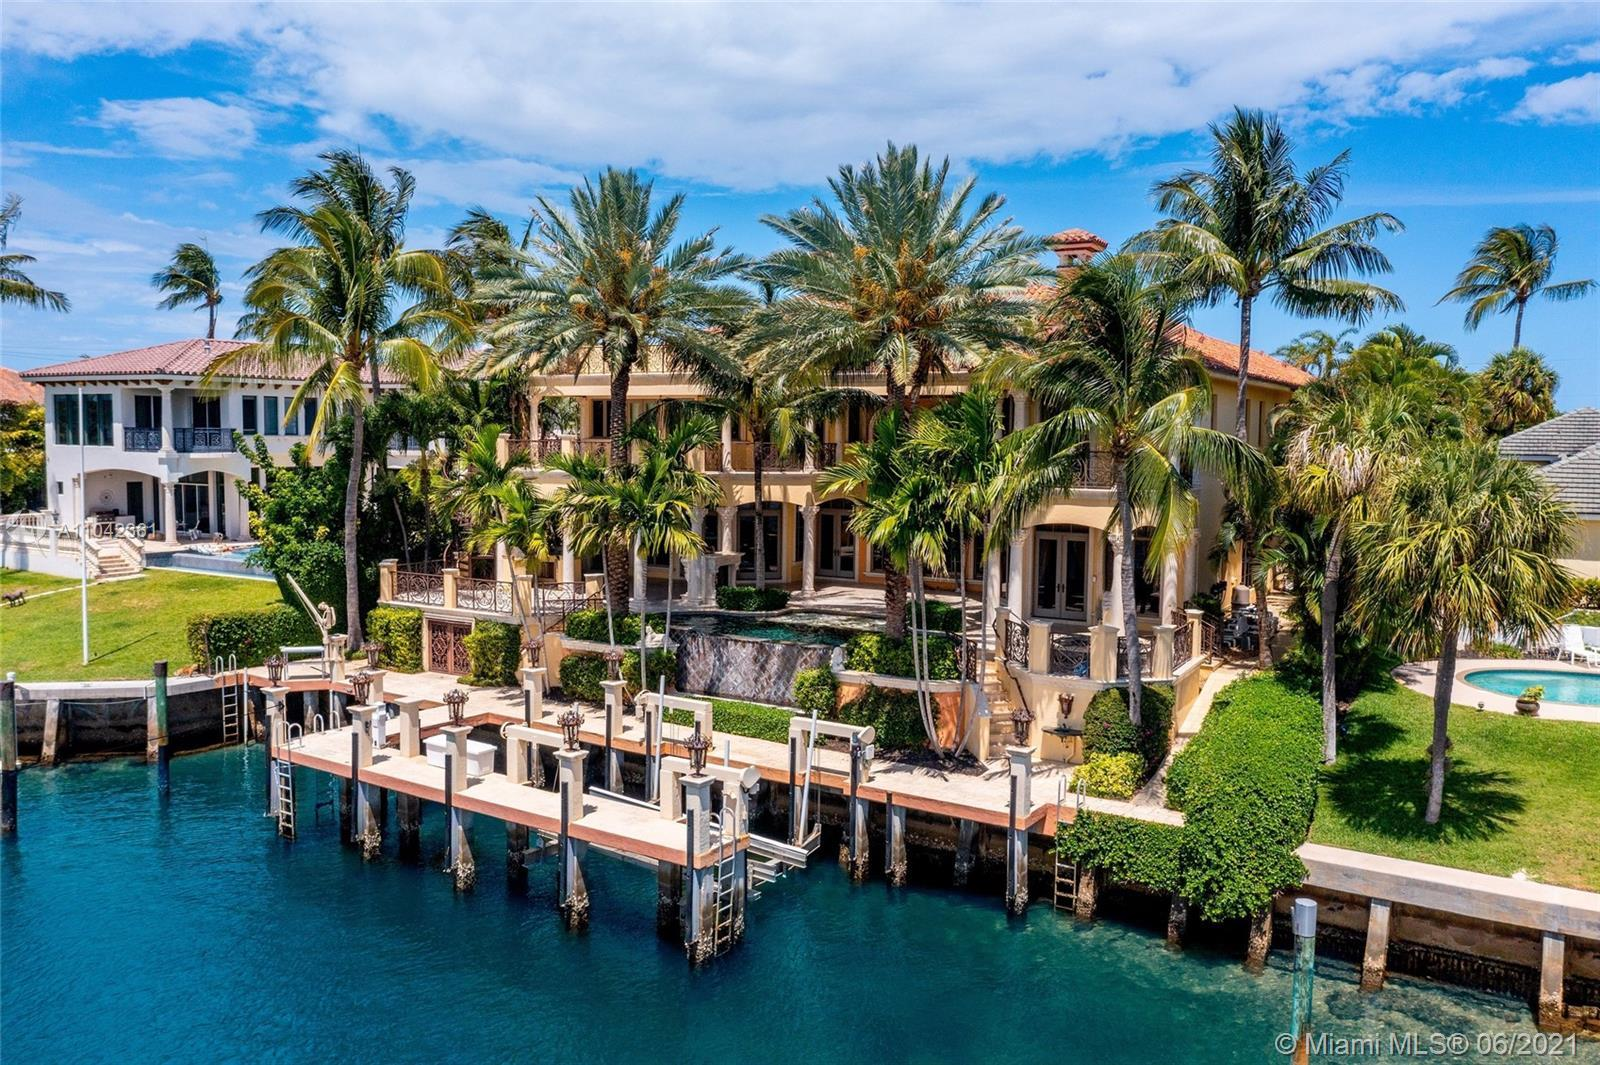 Remarkable Direct Intracoastal Estate located in One of the Most Sought After No Wake Zone Waterways